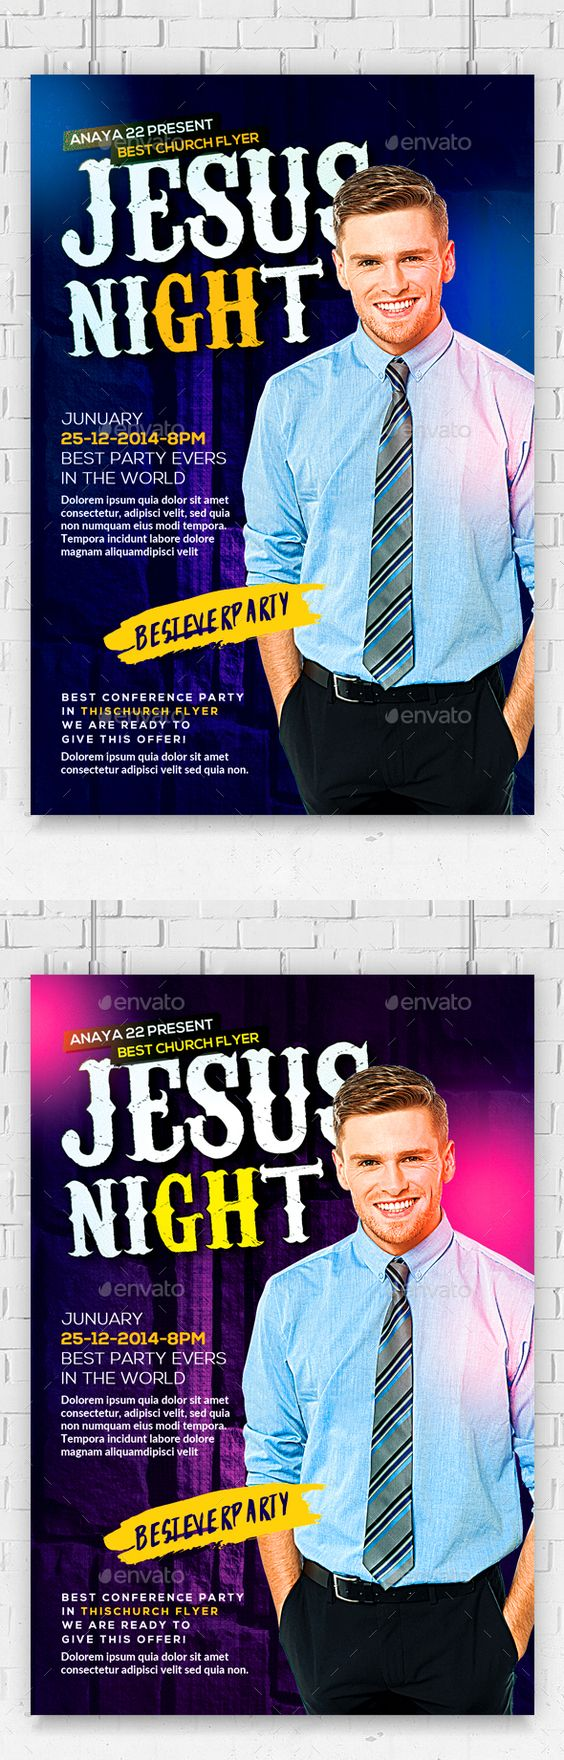 pastor s church flyer study flyers and photoshop pastor s church flyer church flyers here graphicriver